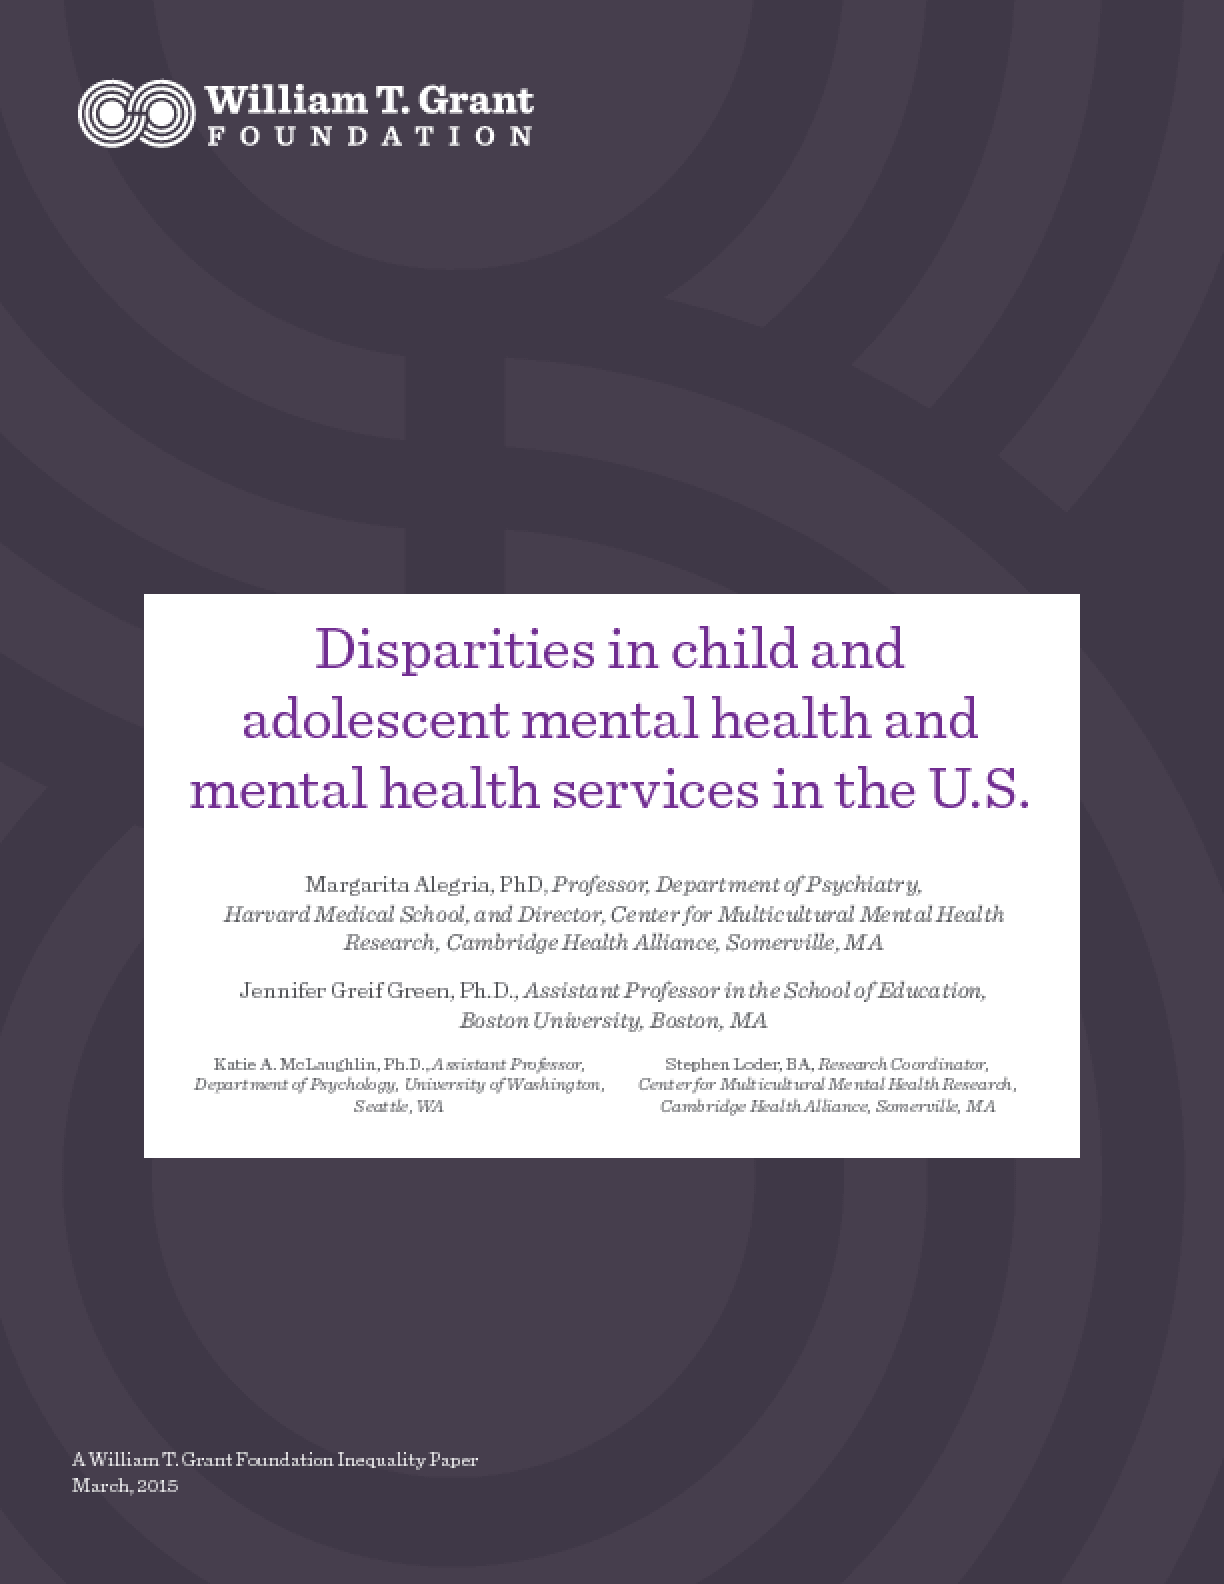 Disparities in Child and Adolescent Mental Health and Mental Health Services in the U.S.